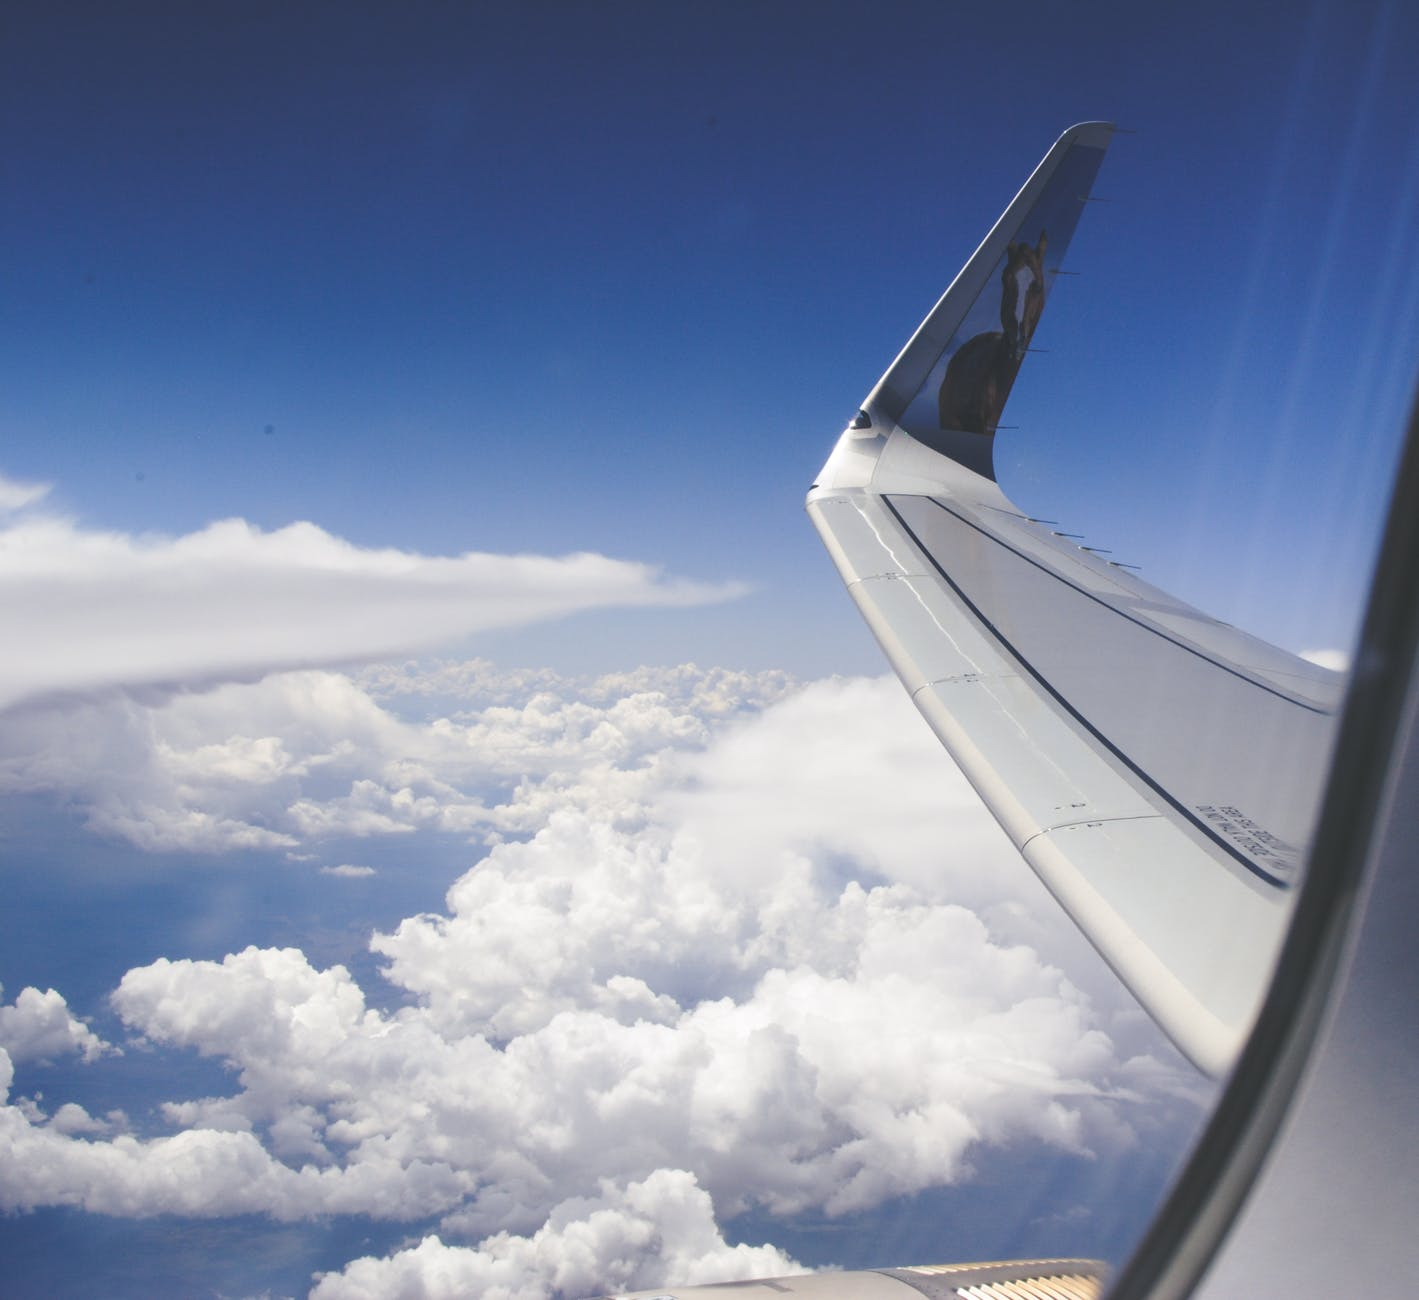 high angle photograph of airplane wings above the clouds under clear blue sky